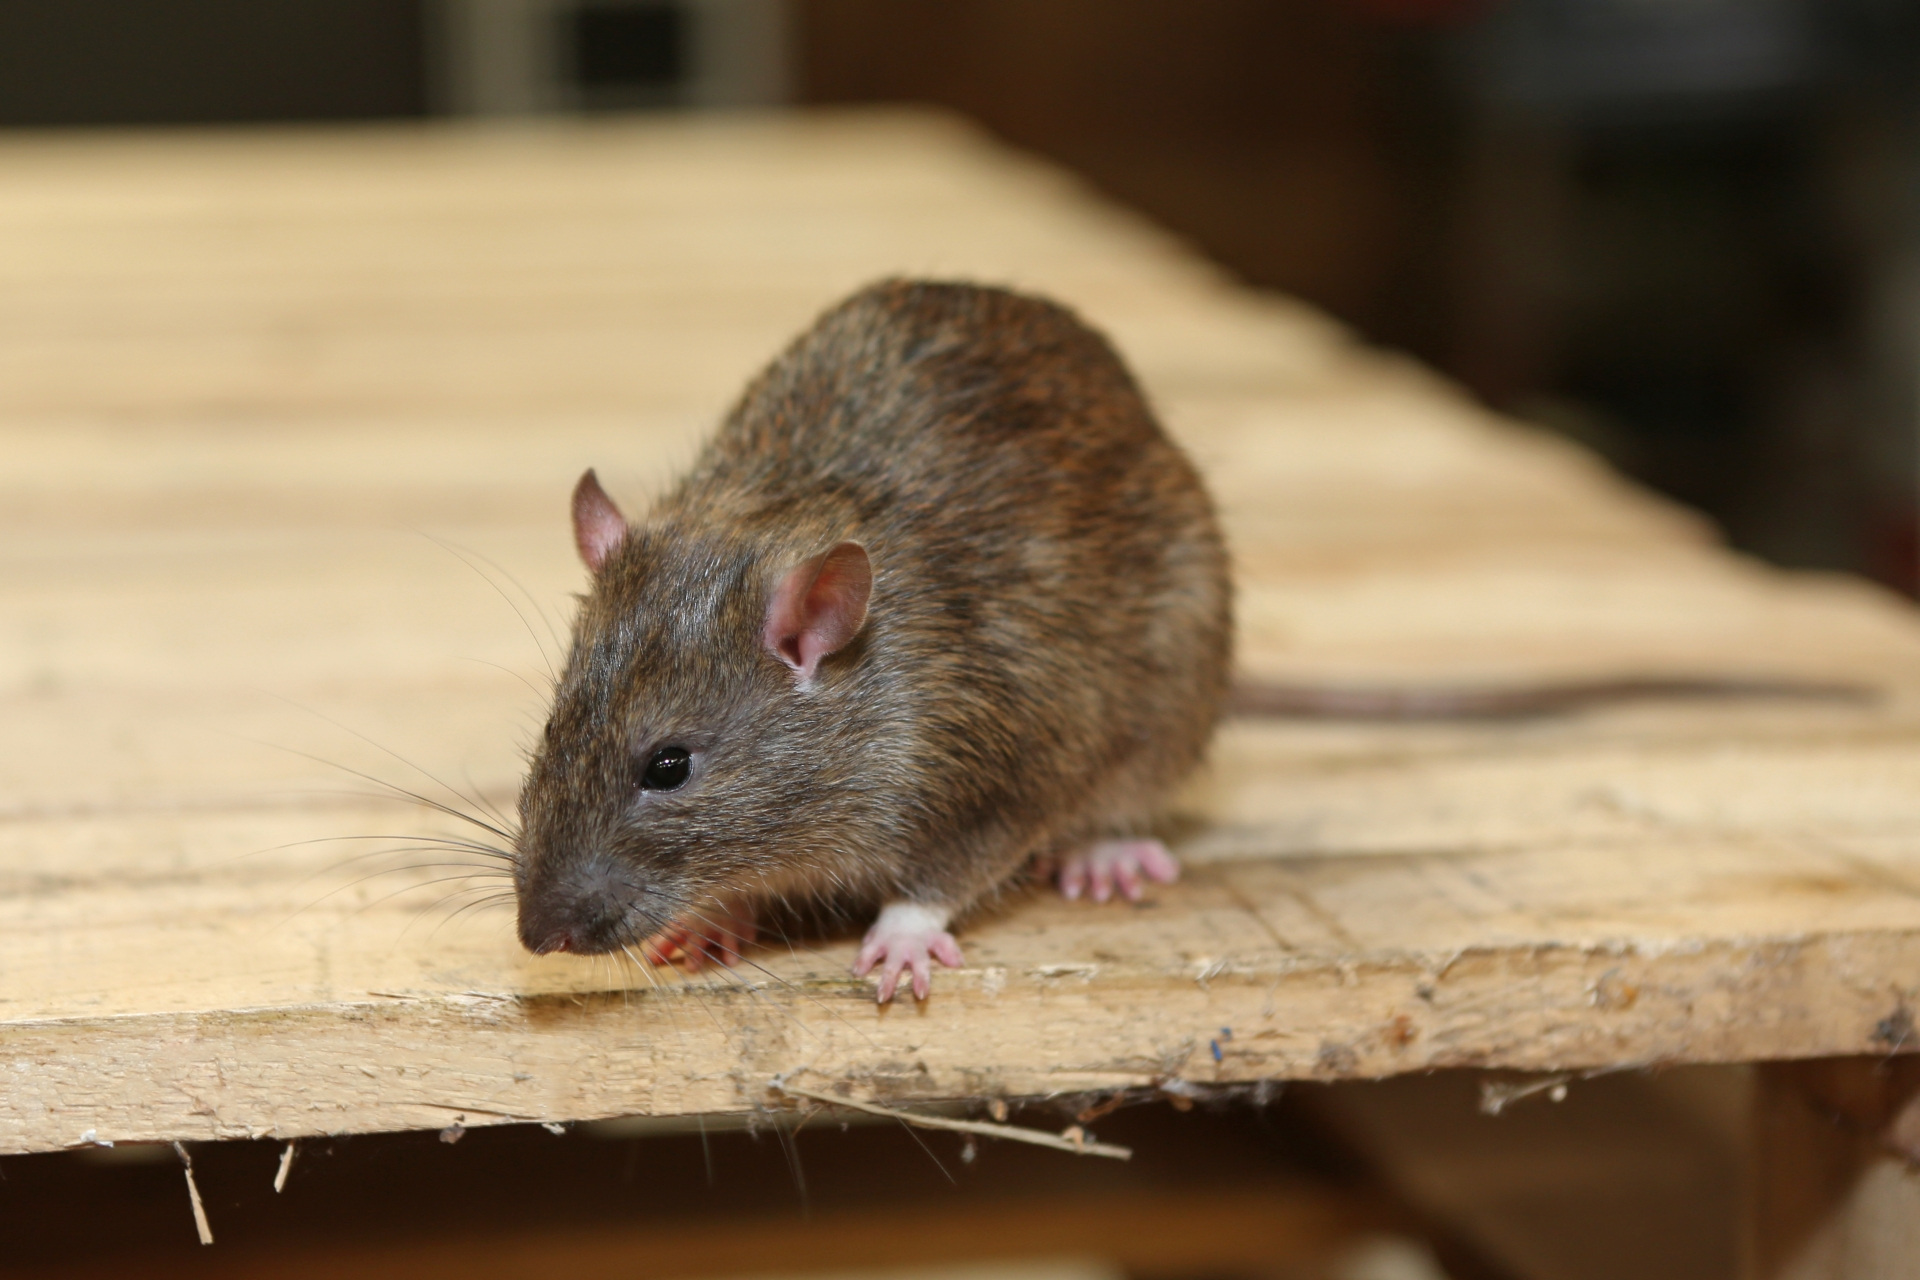 Rat Infestation, Pest Control in Balham, SW12. Call Now 020 8166 9746